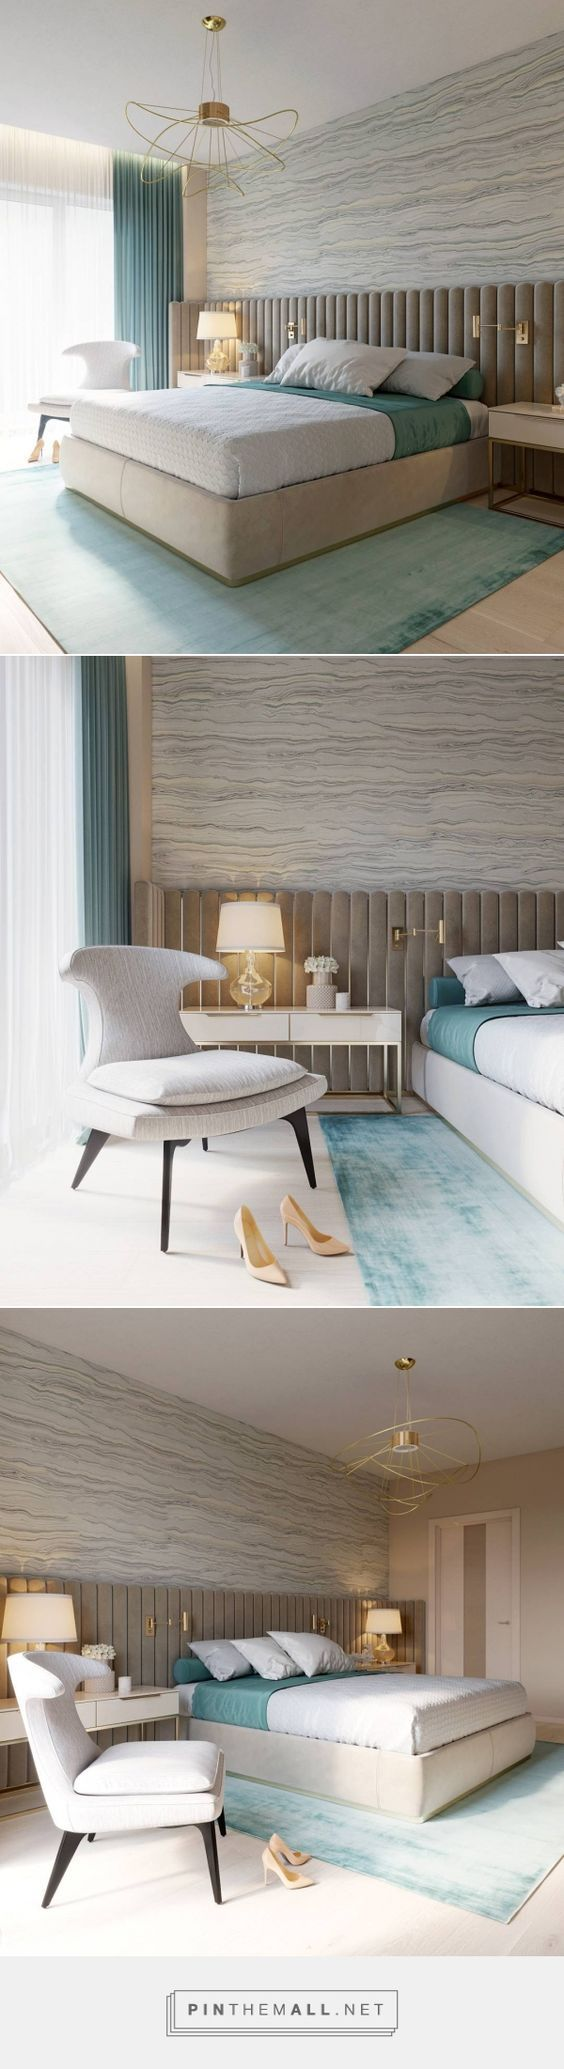 Discover master bedroom design ideas, curated by Boca do Lobo to serve as inspiration for the modern interior designer. Master bedrooms, minimalistic bedrooms, luxury bedrooms and everything bedroom related with a variety of choices that will fit any modern, rustic or vintage home for a great nights sleep